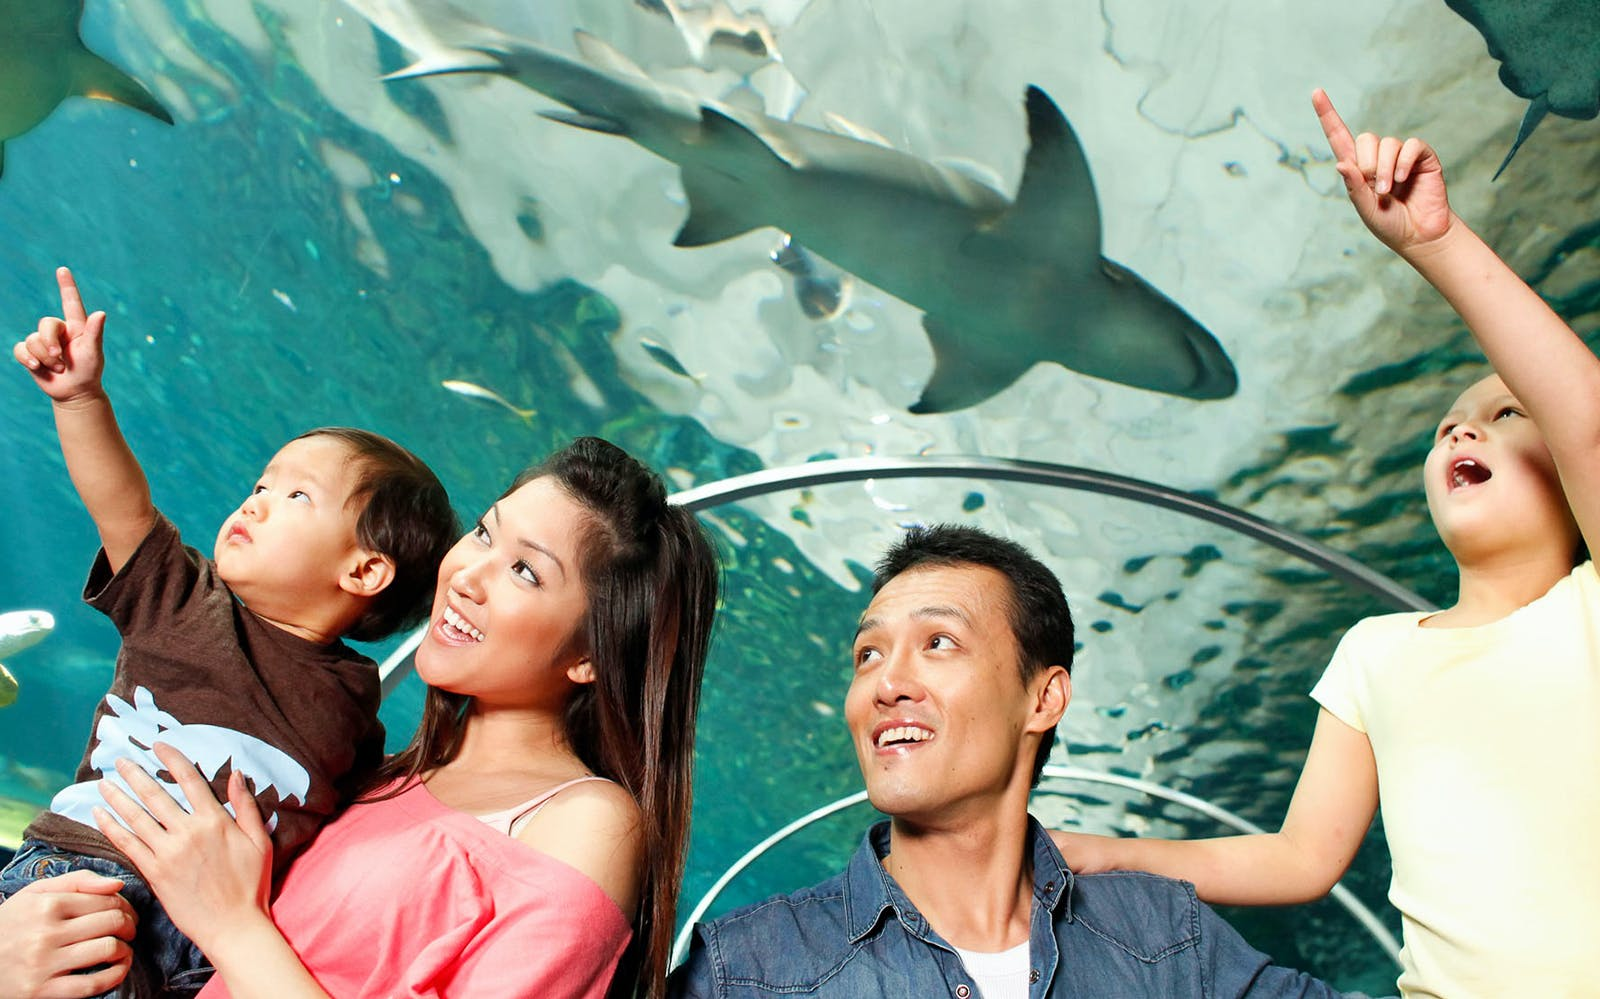 sea life sydney aquarium anytime entry ticket -1